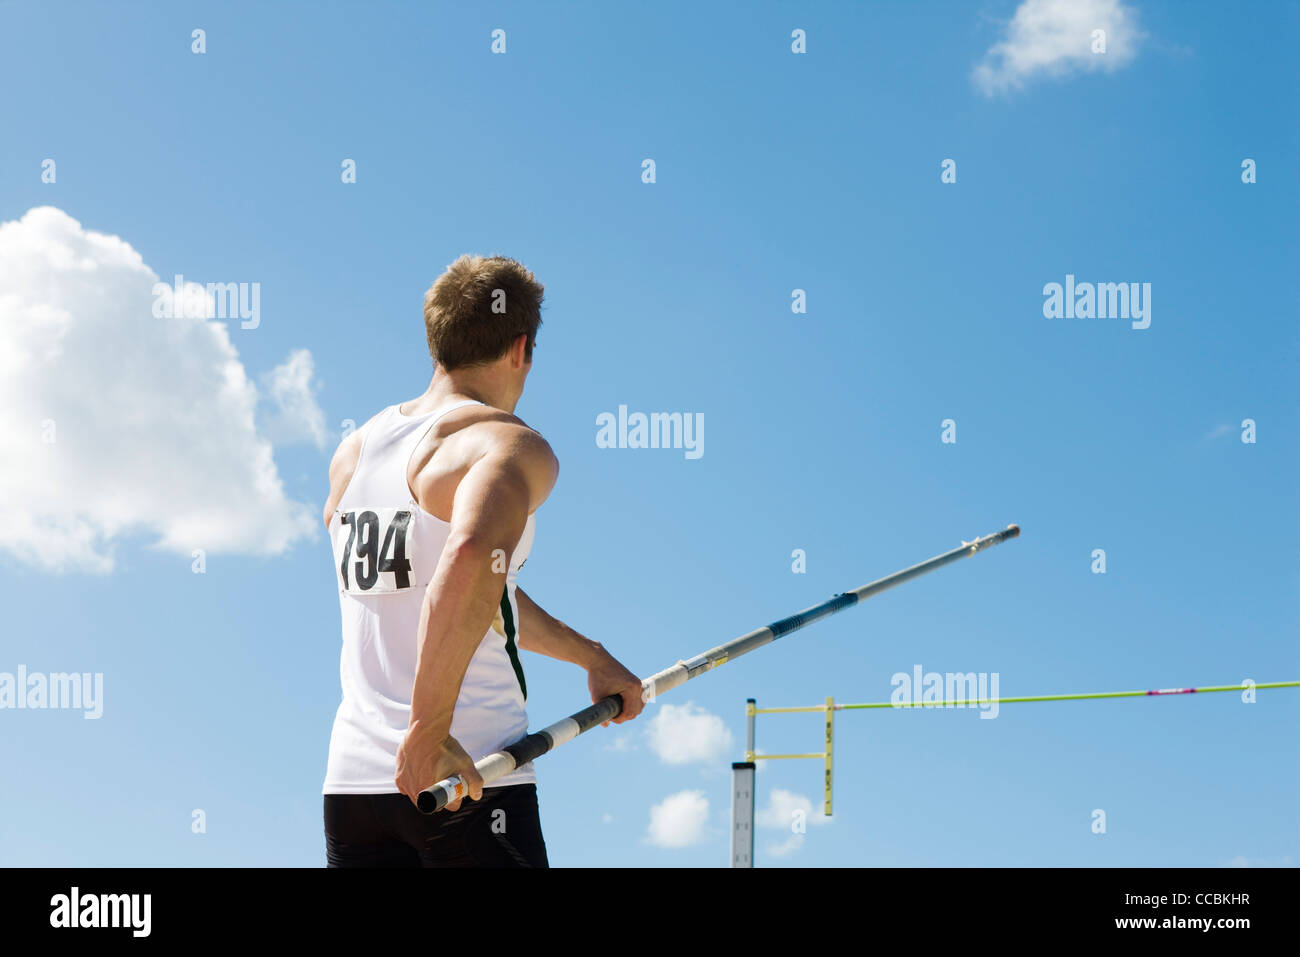 Athlete in pole vaulting competition, rear view - Stock Image